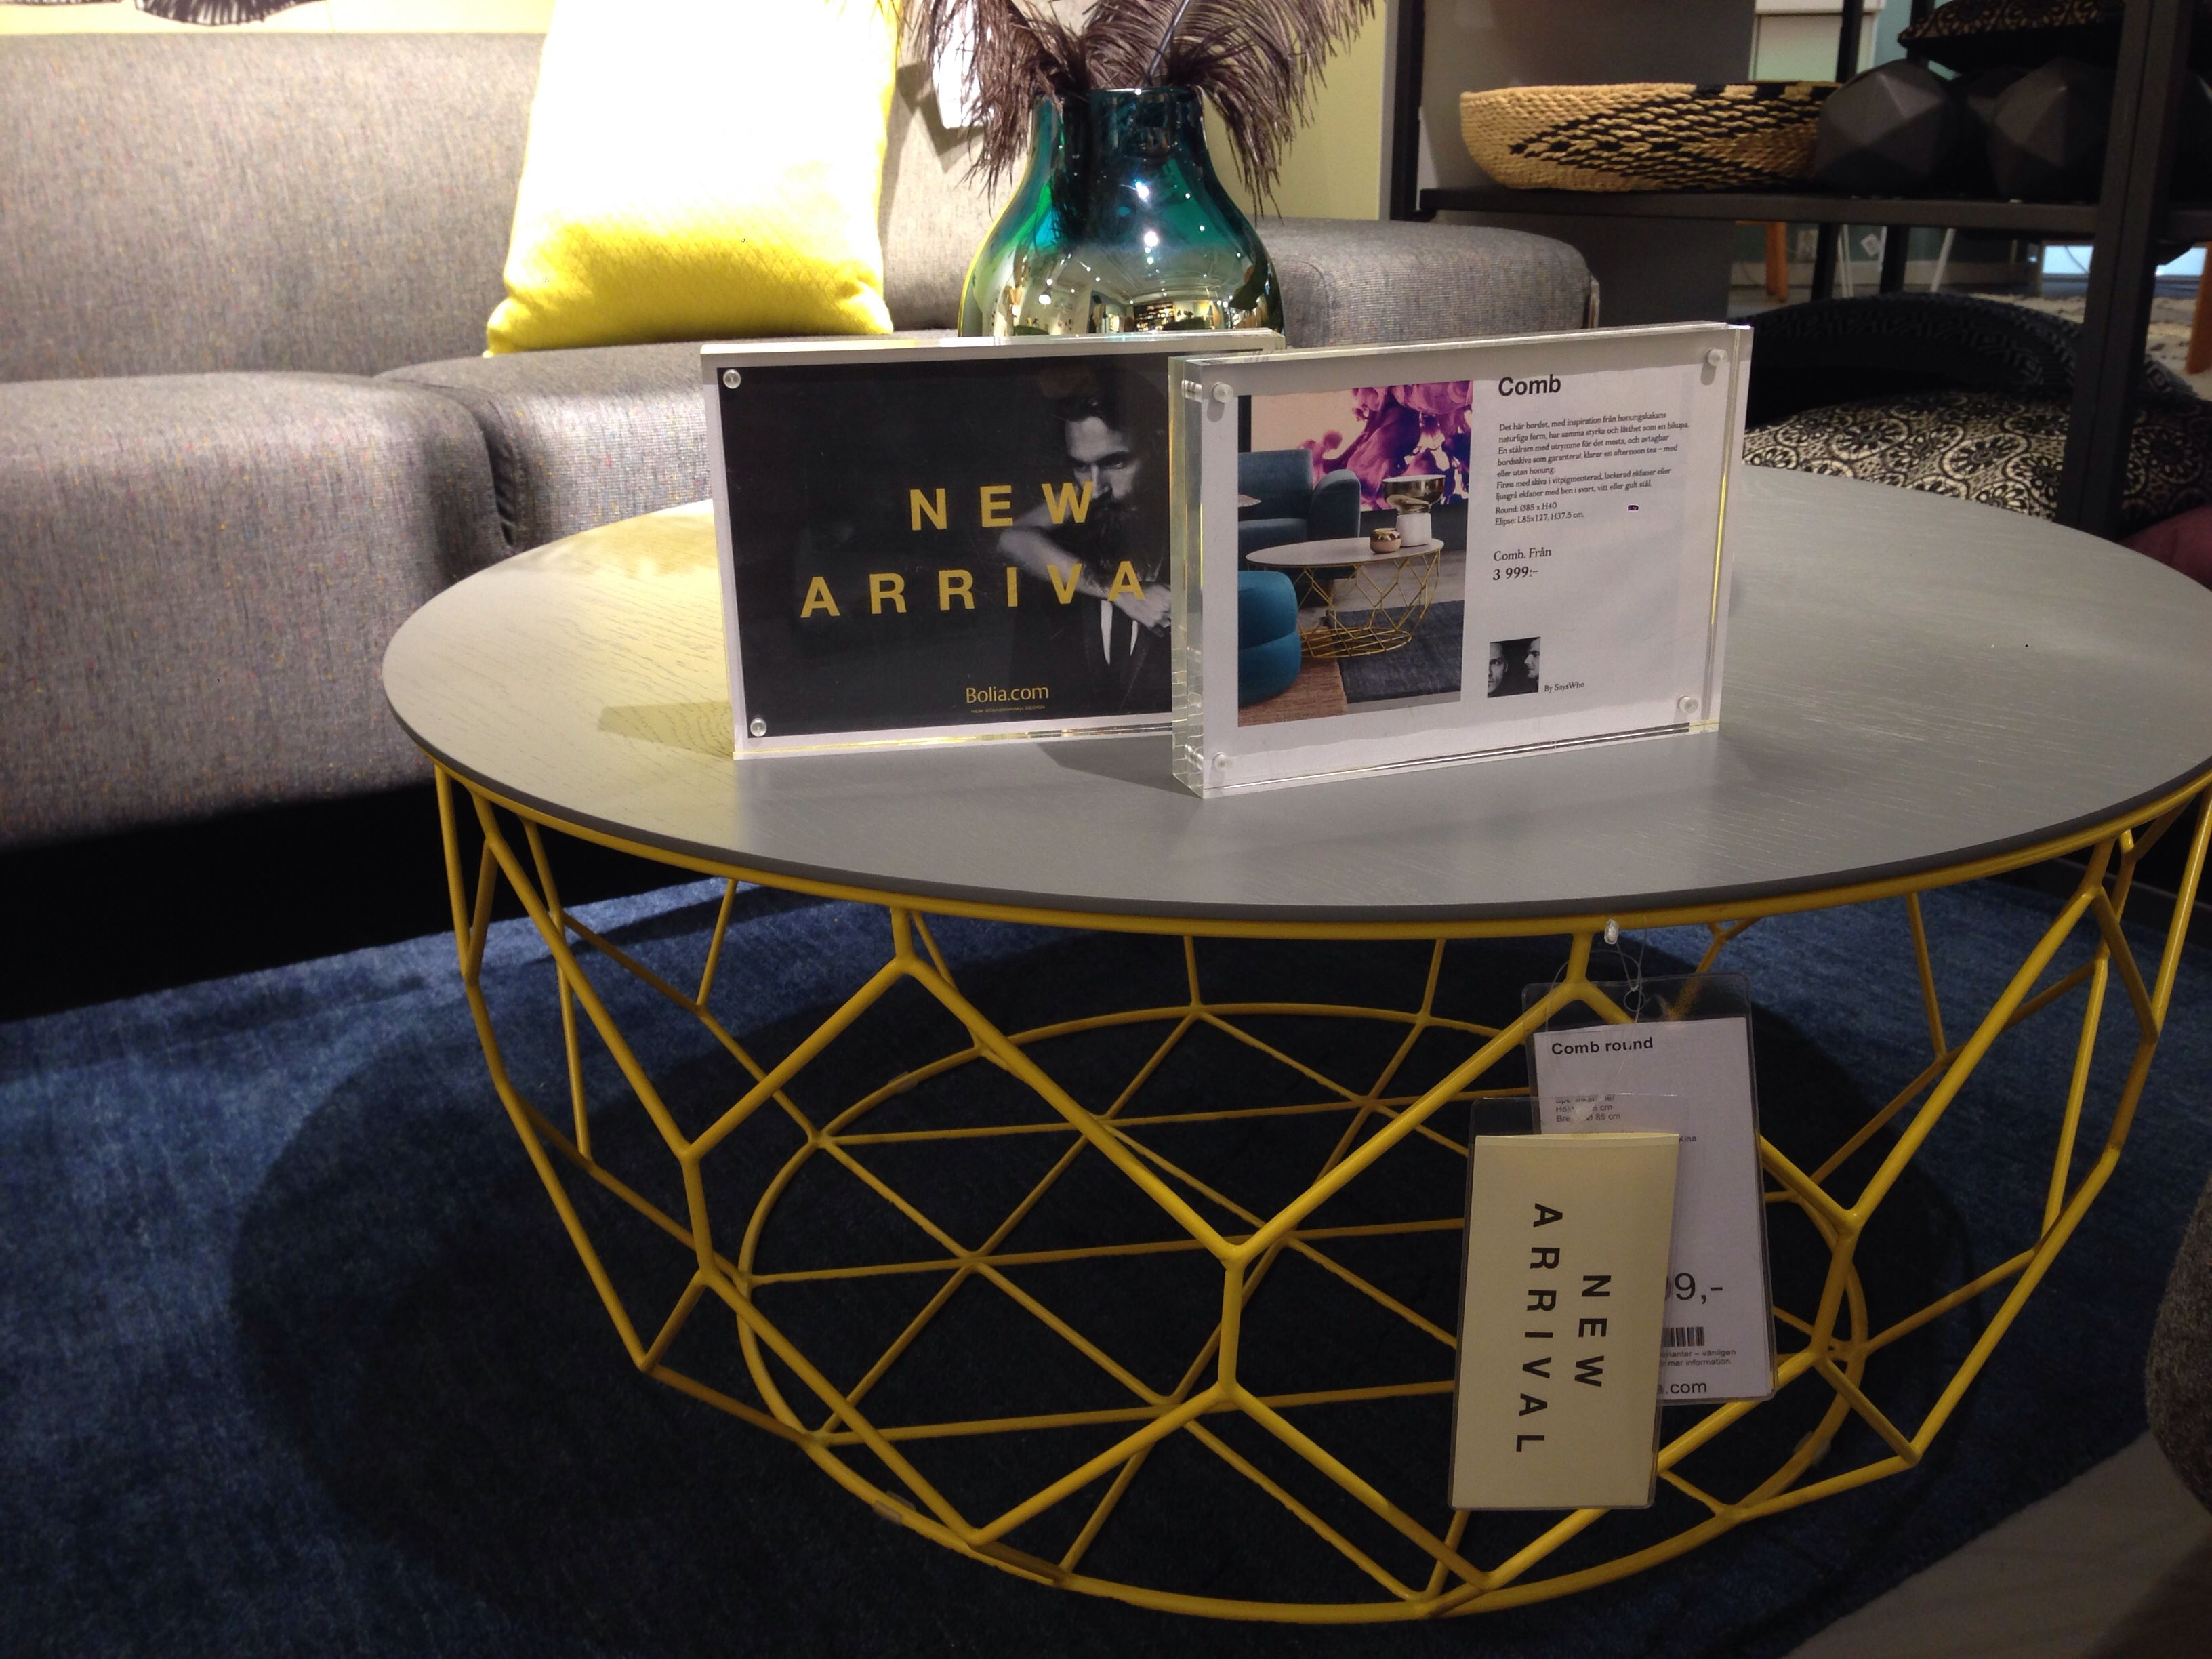 Cool coffee table from Bolia